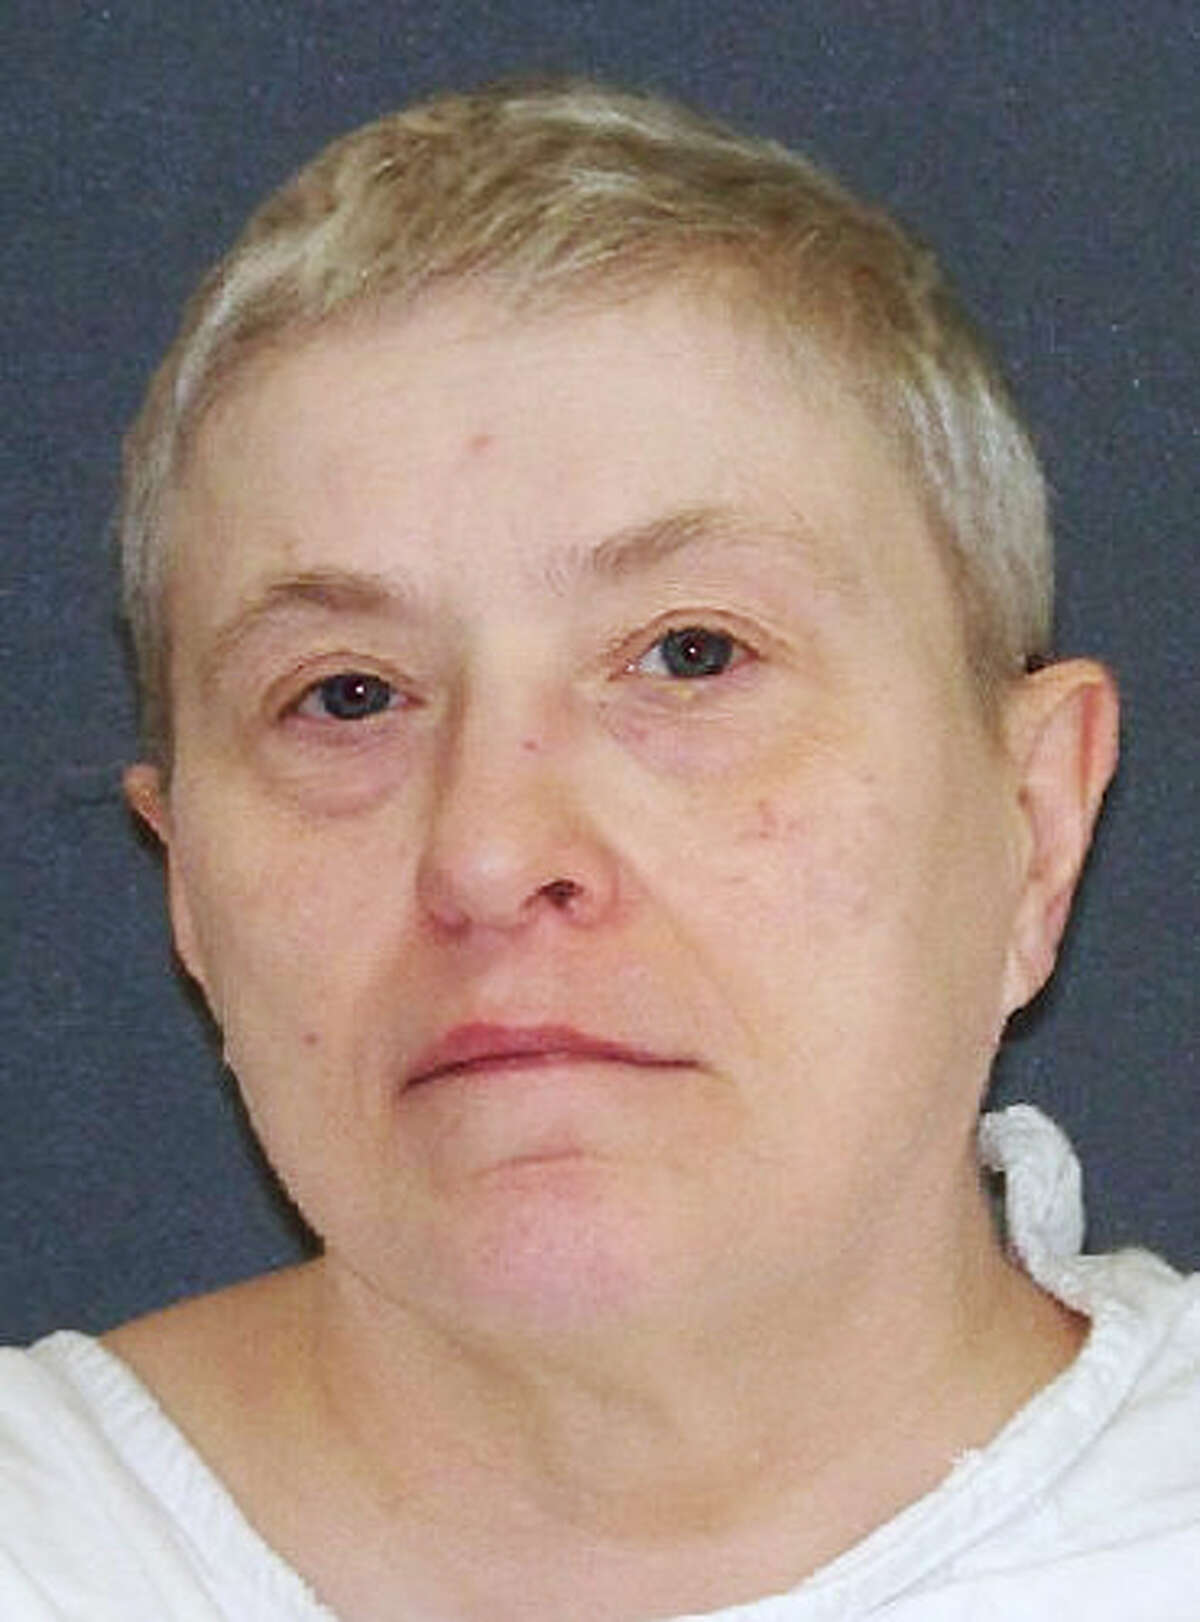 Suzanne Basso Executed: February 5, 2014 Basso was sentenced to death for for the torture slaying of a mentally impaired man near Houston back in 1998. Police say the deadly attack was committed so Basso could collect on an insurance policy on the victim, which she was the beneficiary.